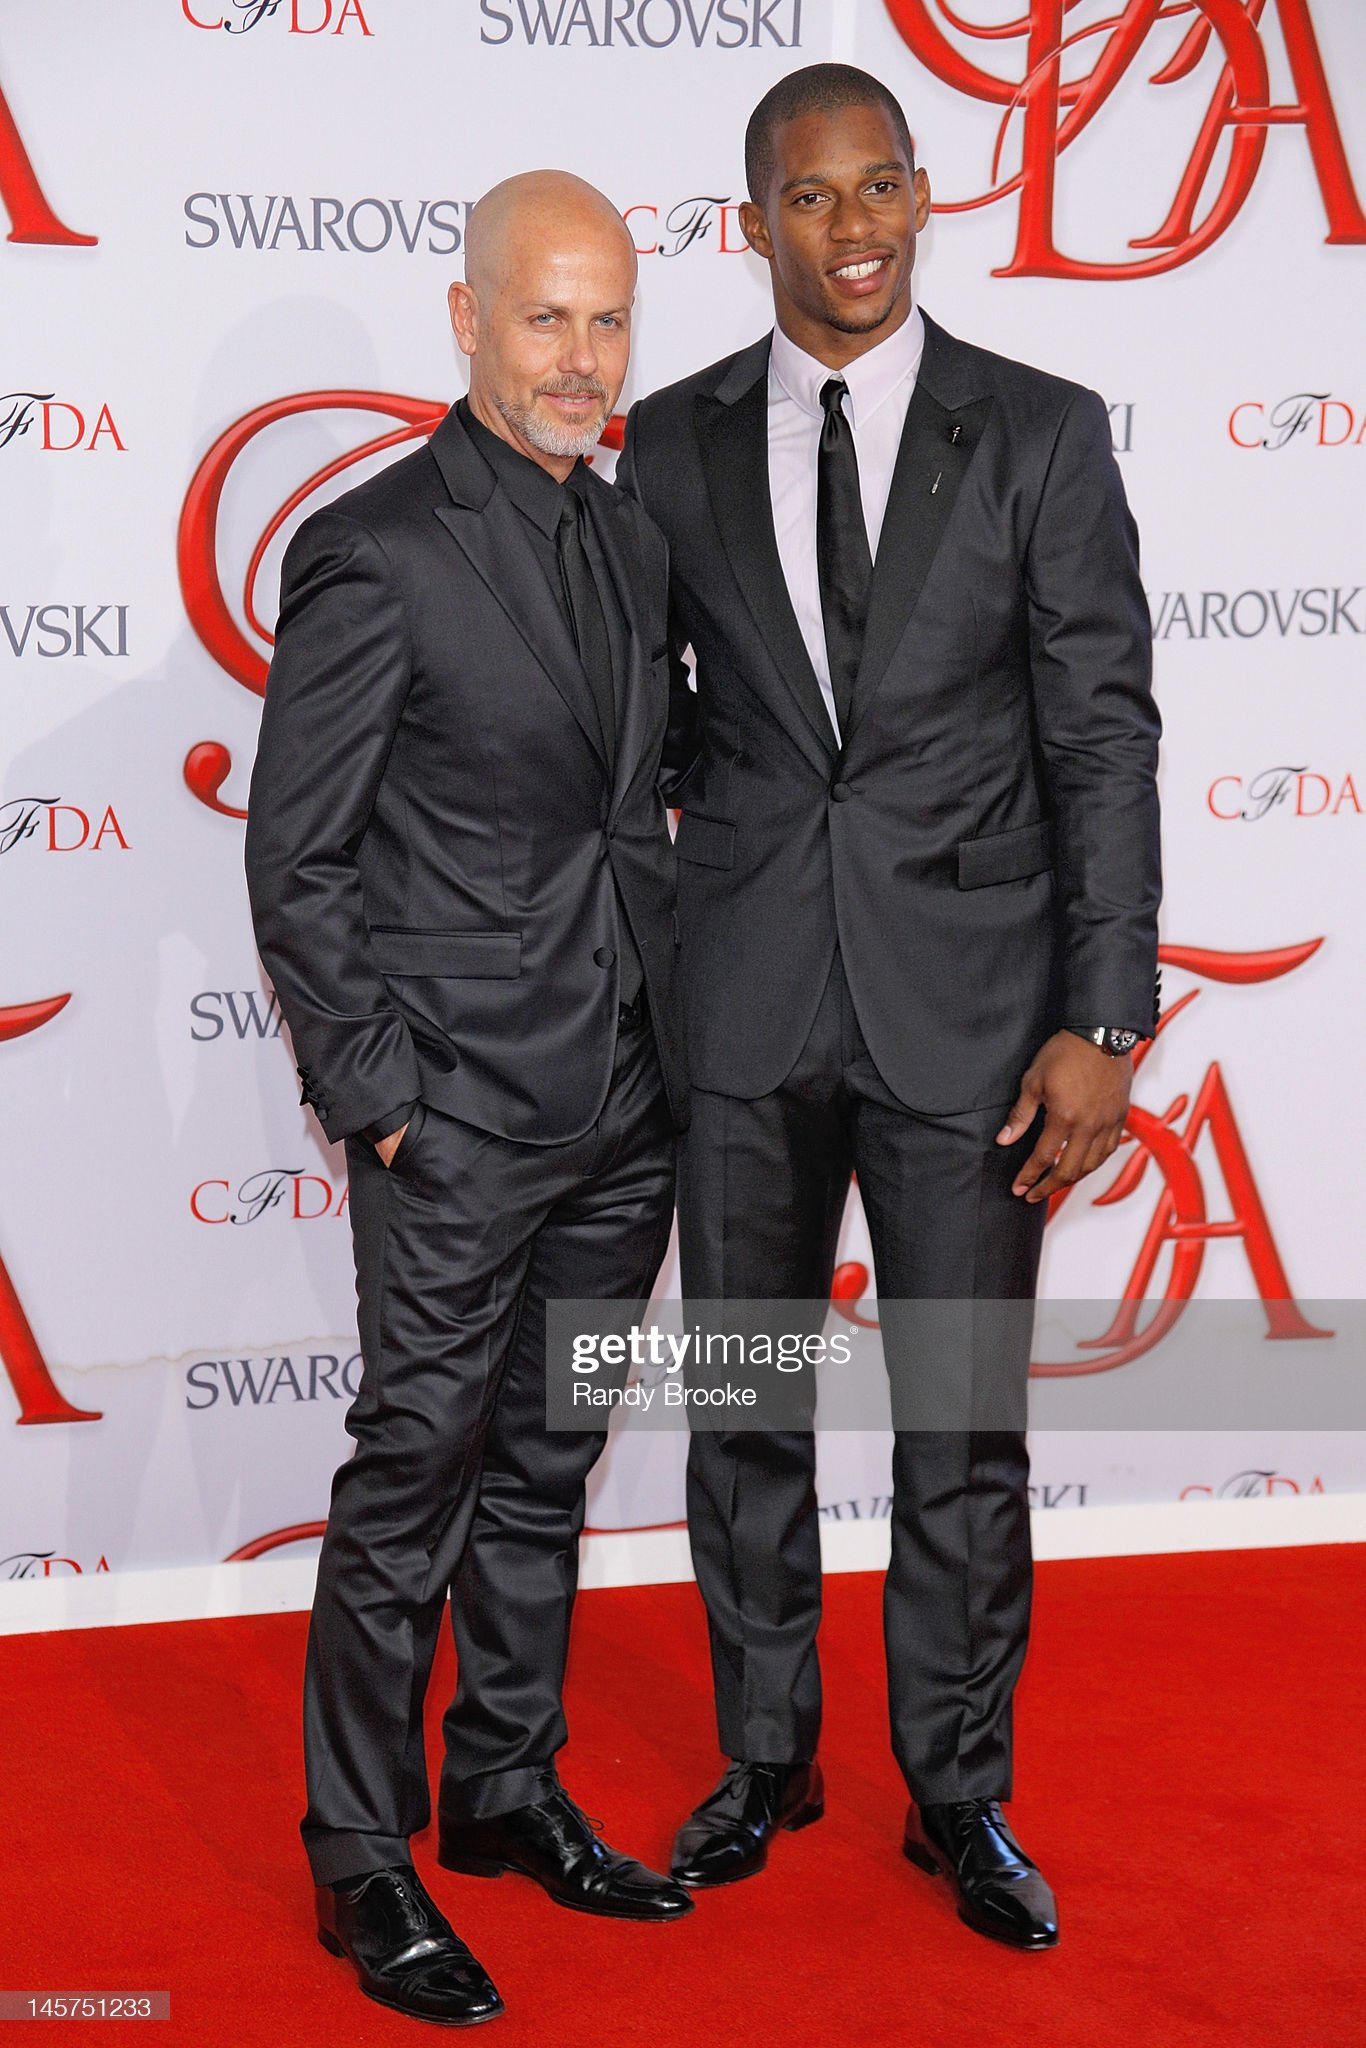 ¿Cuánto mide Italo Zucchelli? - Altura - Real height Italo-zucchelli-and-victor-cruzattend-2012-cfda-fashion-awards-at-picture-id145751233?s=2048x2048